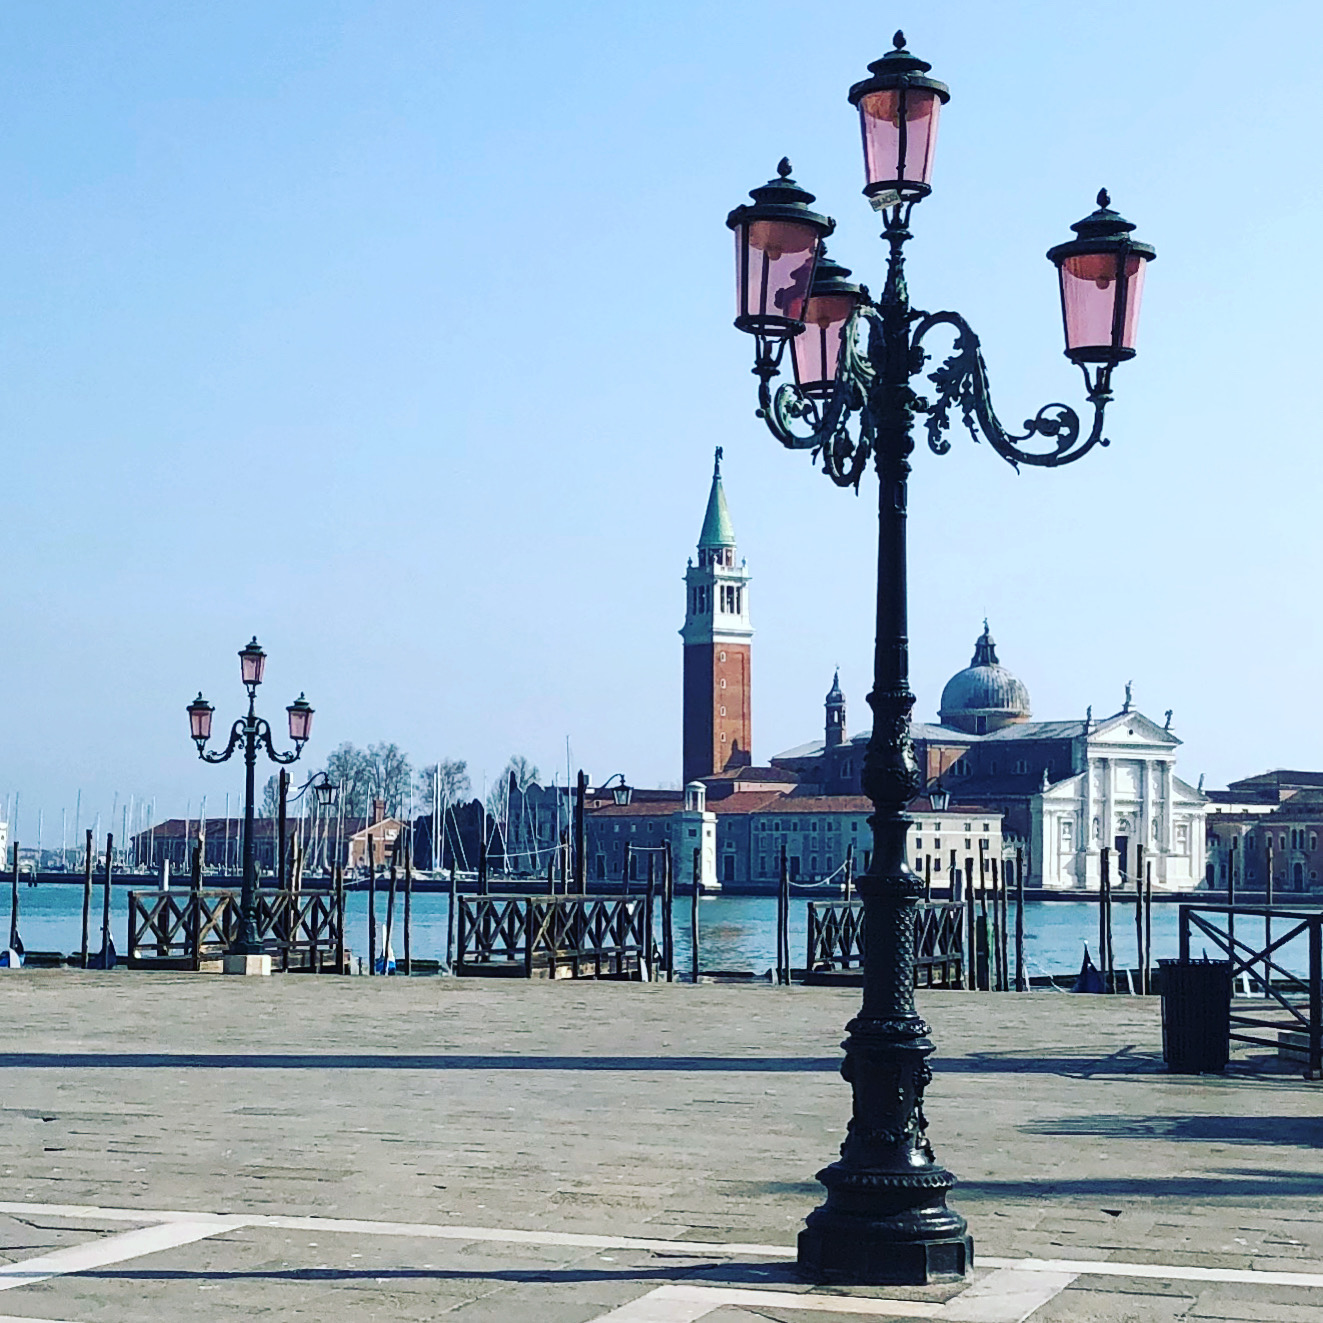 CNN 19.06.2020: For Some Venice Residents, Reopening After Lockdown Is Bittersweet